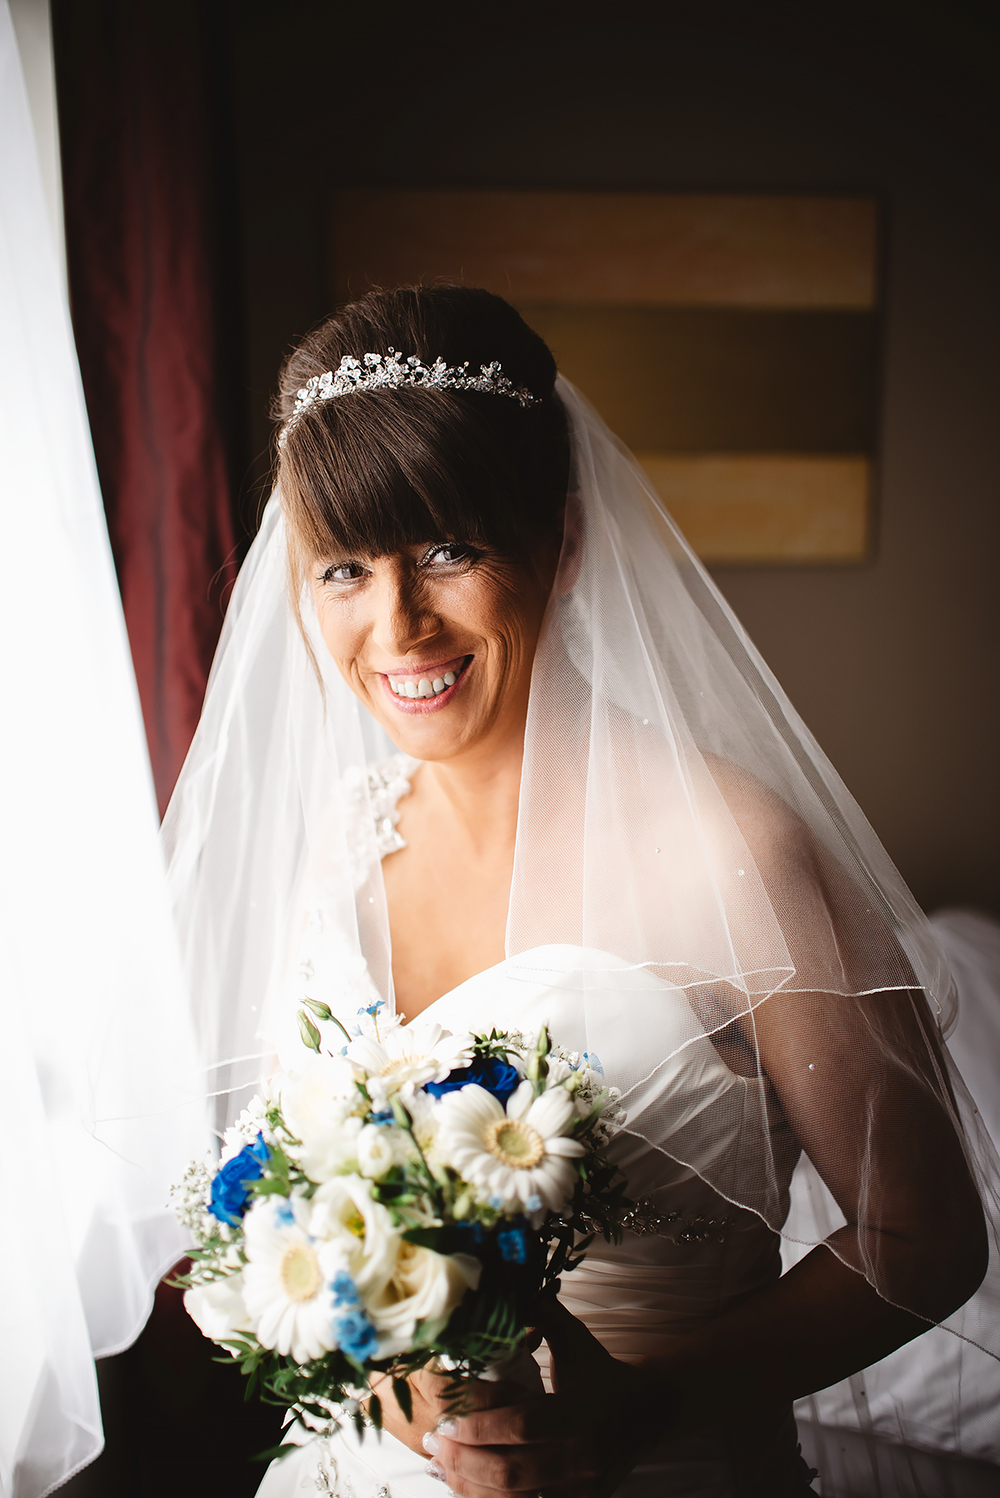 wedding Ireland wedding photographer tipperary cork dublin limerick waterford galway photography best story documentary portrait art 11.jpg